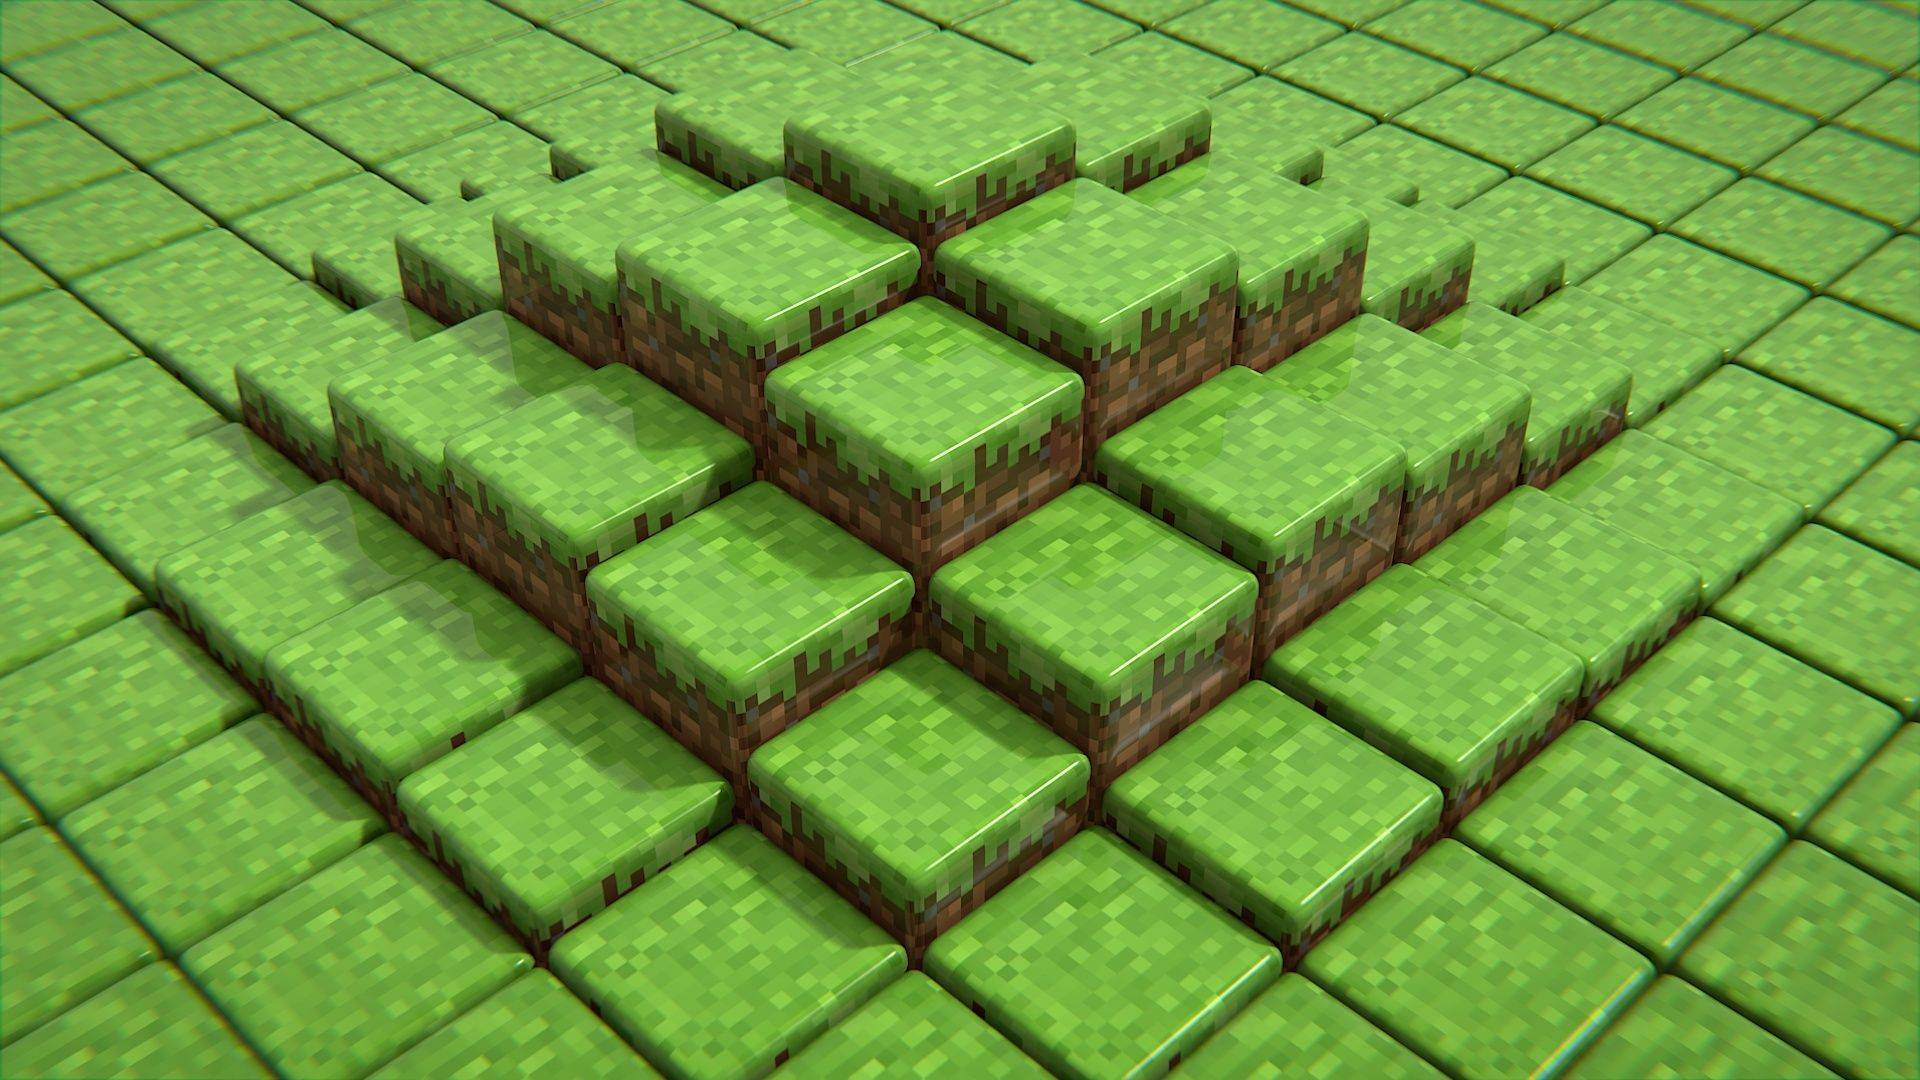 Amazing Wallpaper Minecraft Plain - wallpa10  Best Photo Reference_845272.jpg